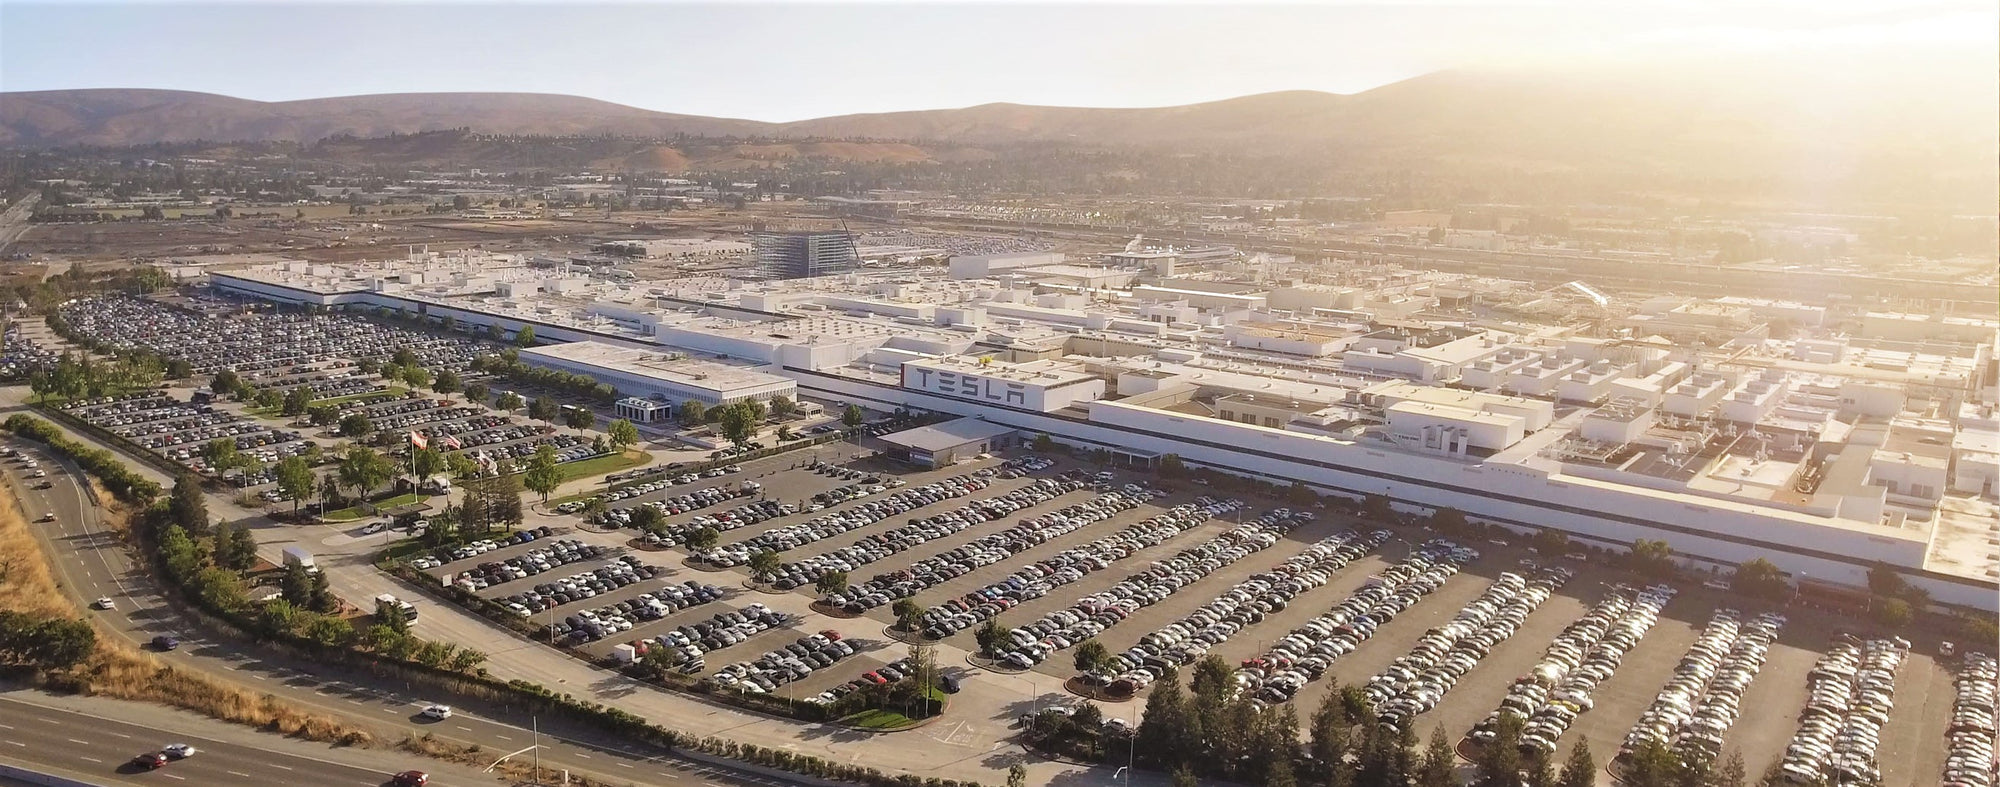 Tesla Fremont Factory In Prepare To Reopen In Between Now and Next Week, SF Chronicle Reports